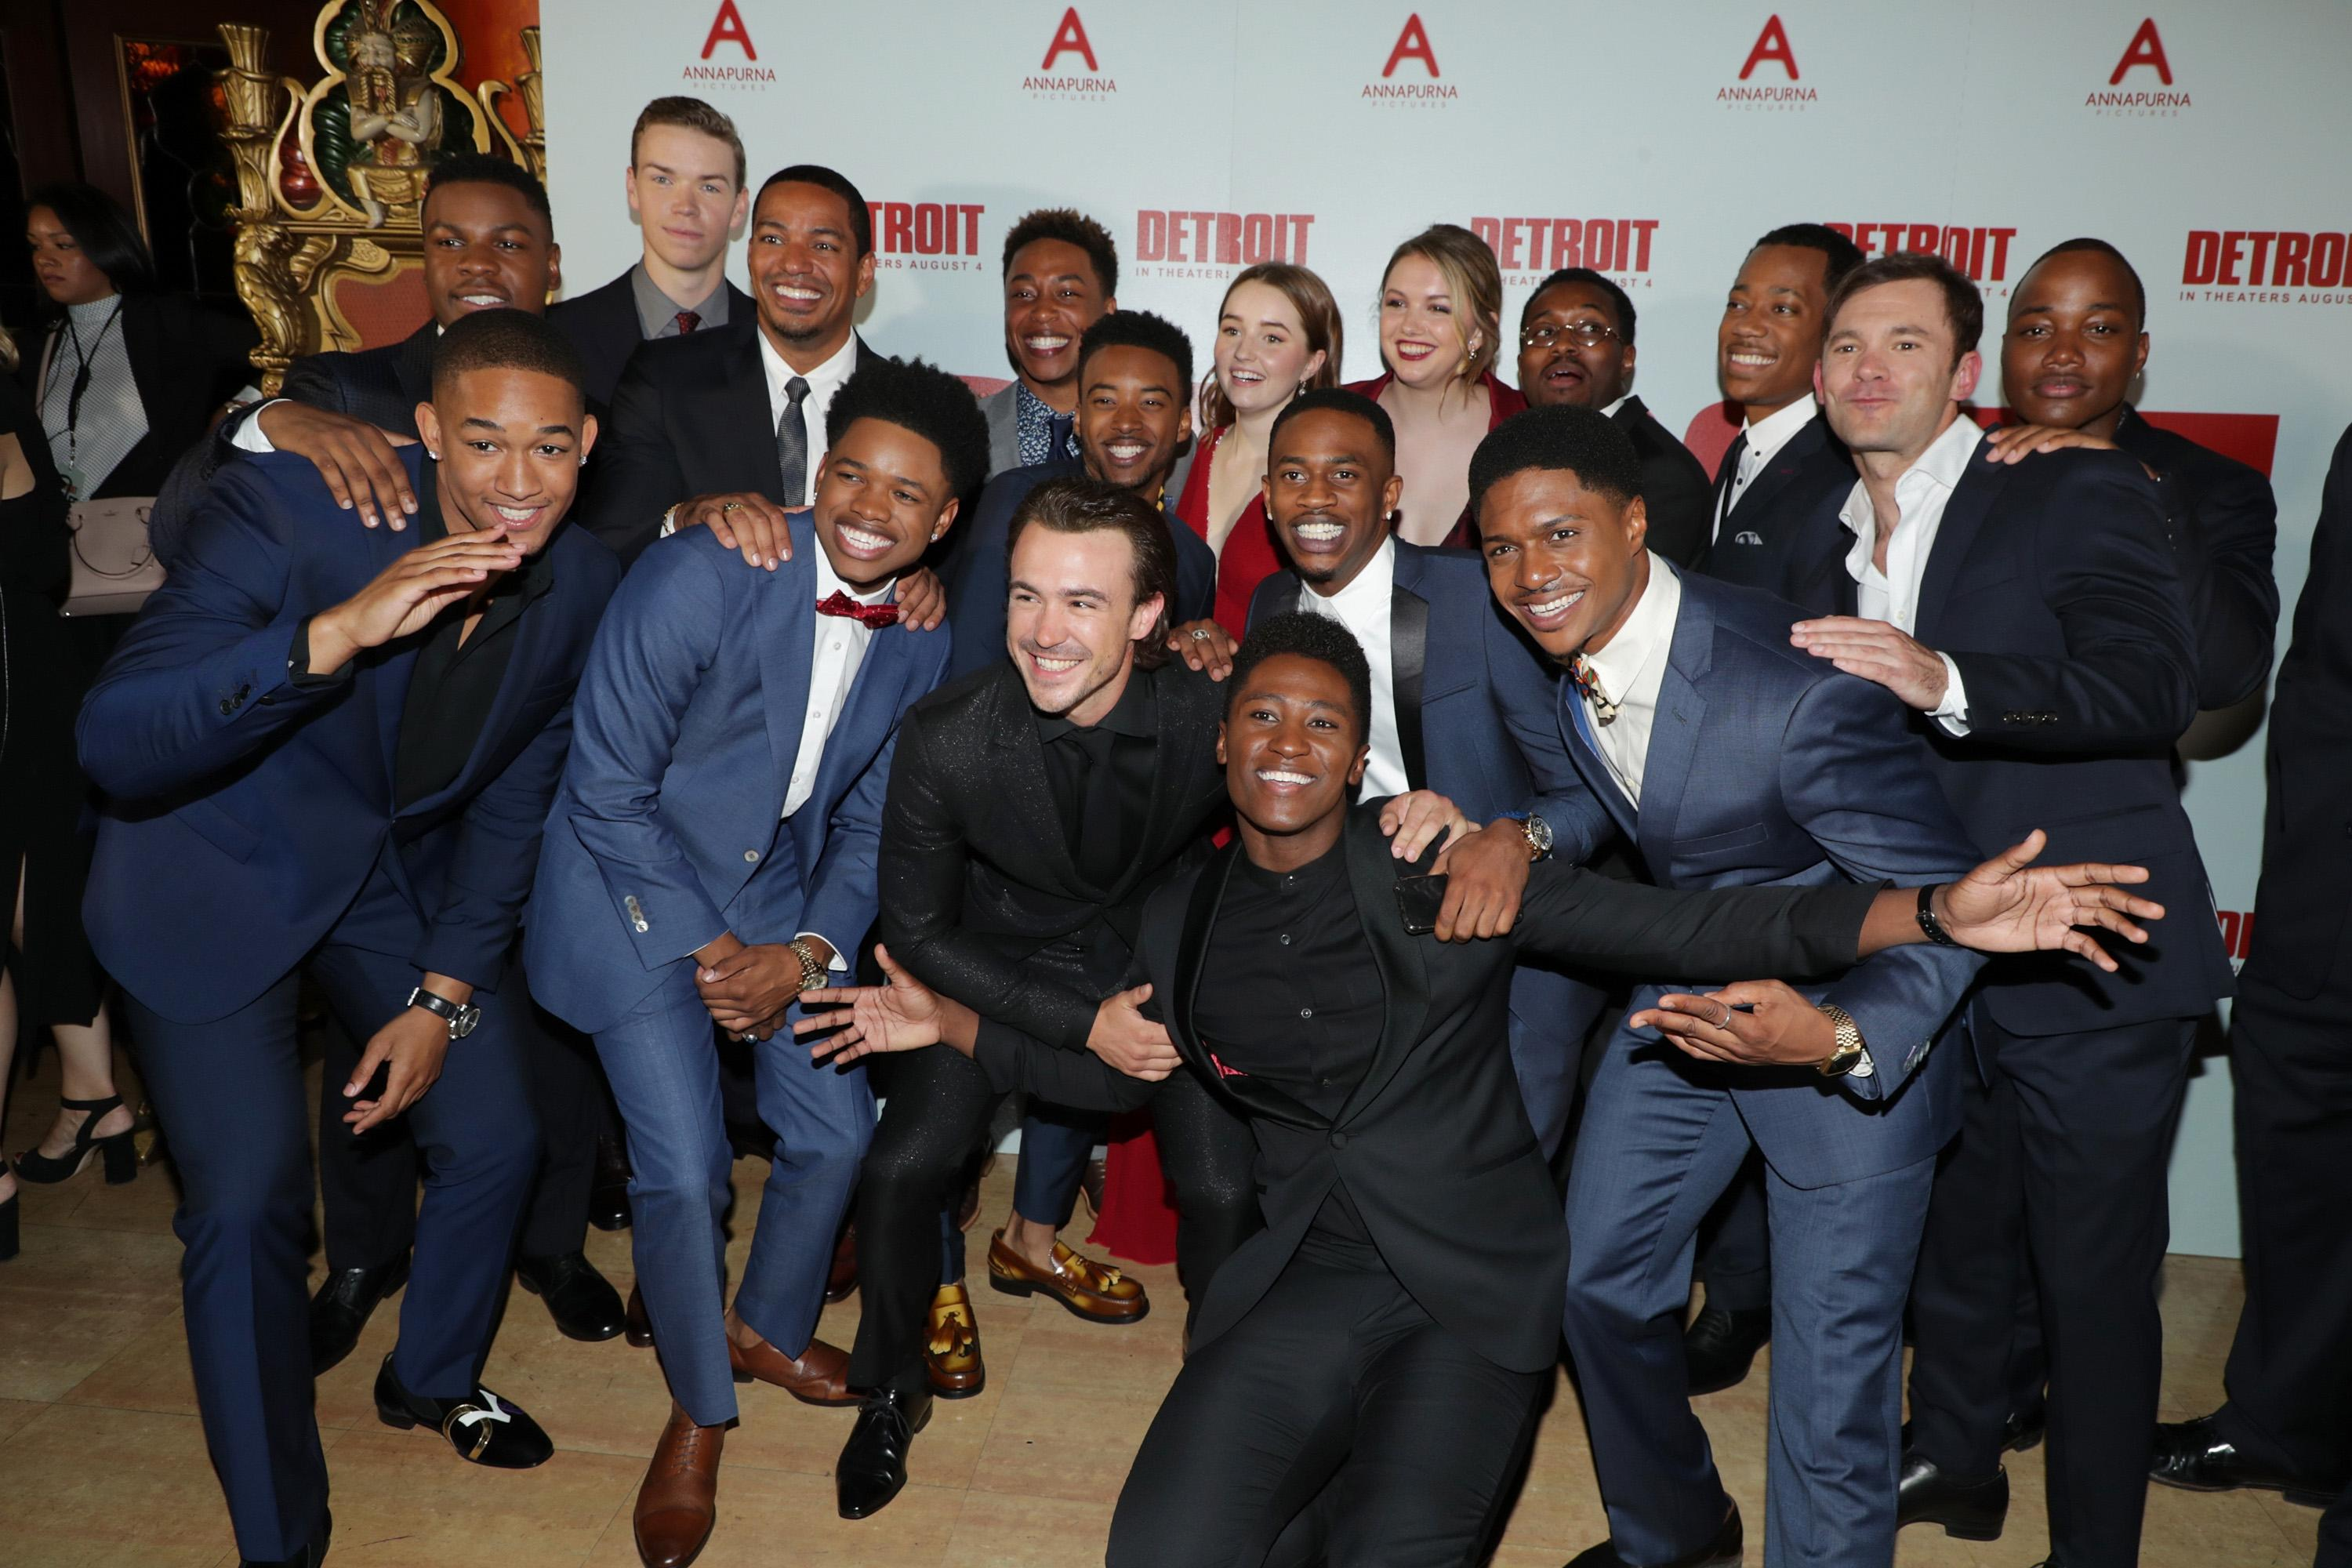 John Boyega, Peyton 'Alex' Smith, Will Poulter, Laz Alonso, Nathan Davis Jr., Algee Smith, Jacob Latimore,  Ben O'Toole, Joseph David-Jones, Kaitlyn Dever, Malcolm David Kelley, Hannah Murray, Ephraim Sykes, Tyler James Williams, Austin Hebert, Leon Thomas III